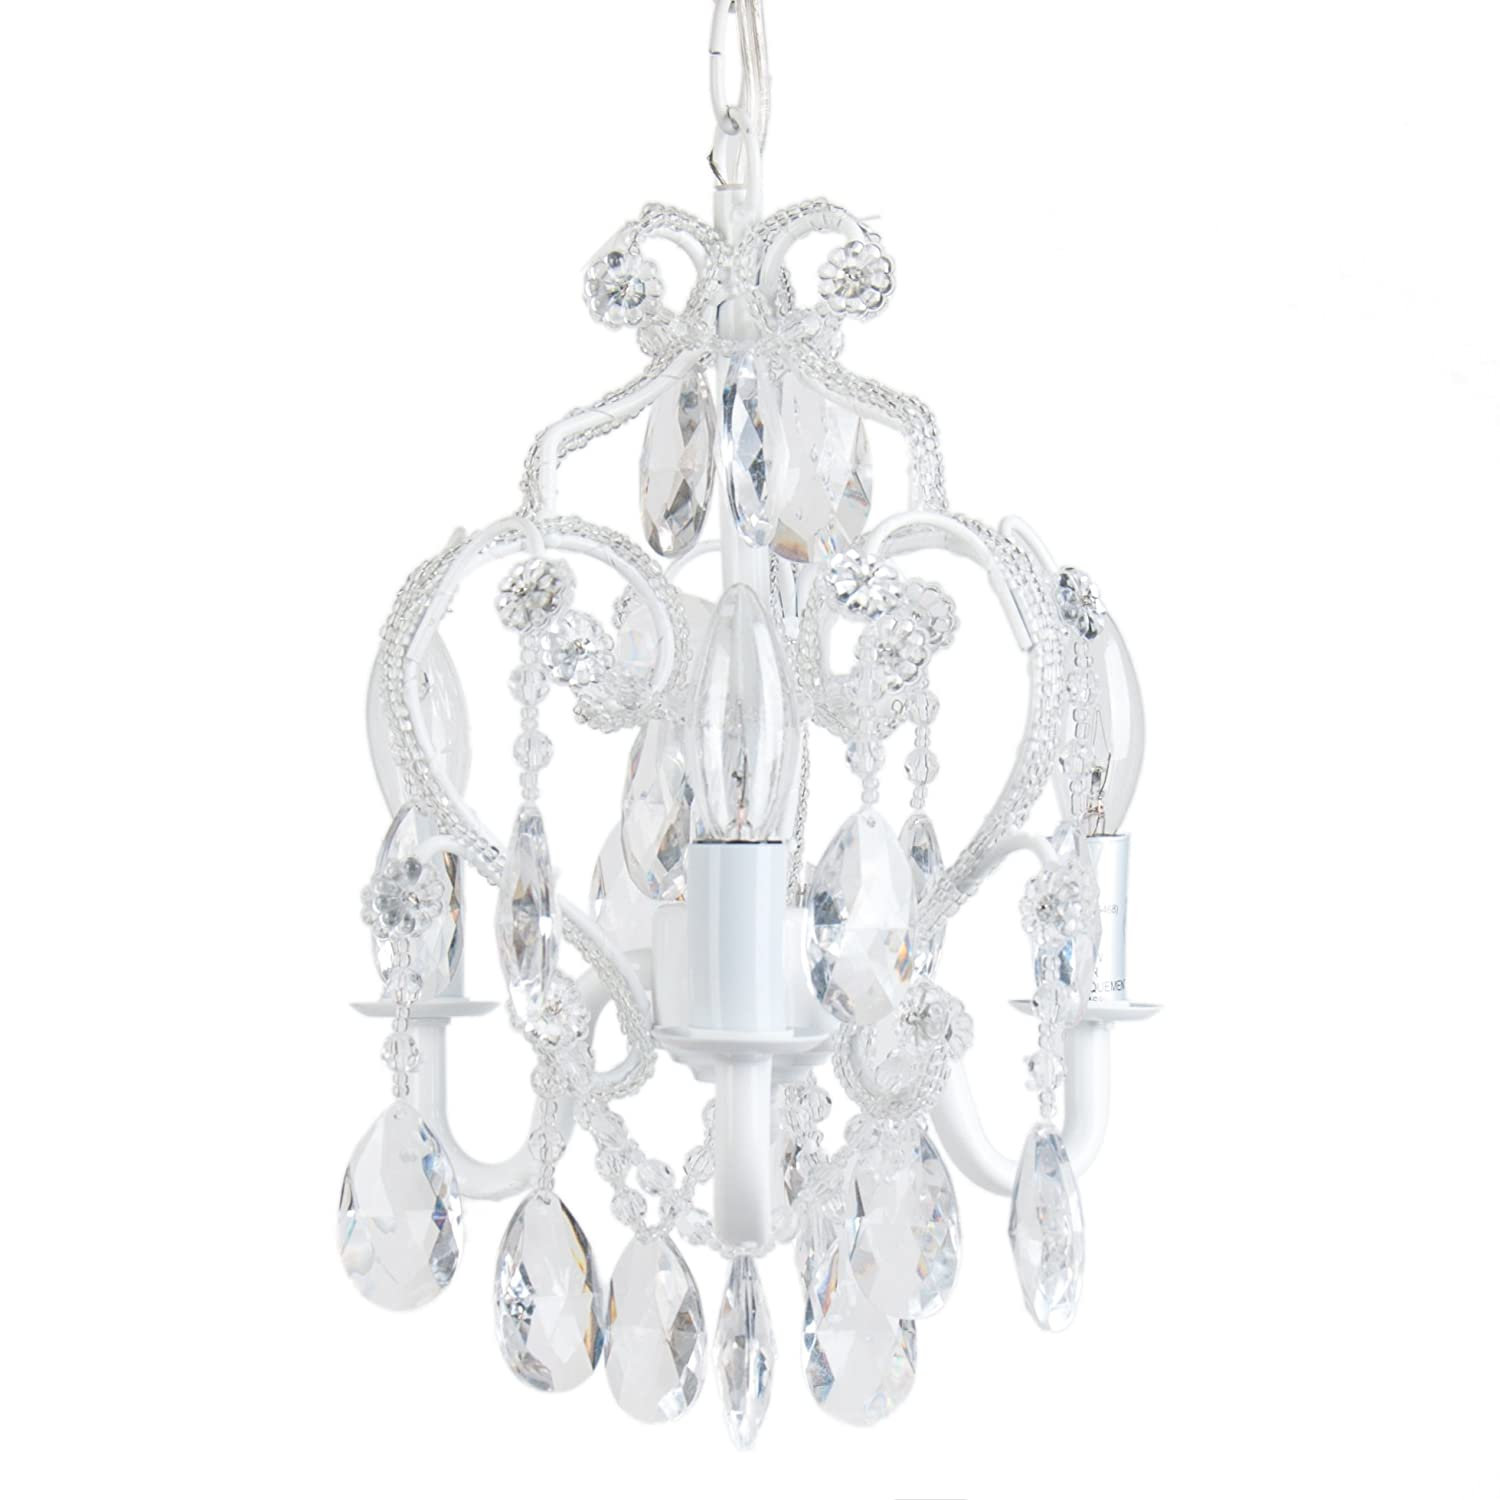 bling solutions chandeliers furniture small round lighting store ottawa chandelier products polanco interior decor gold